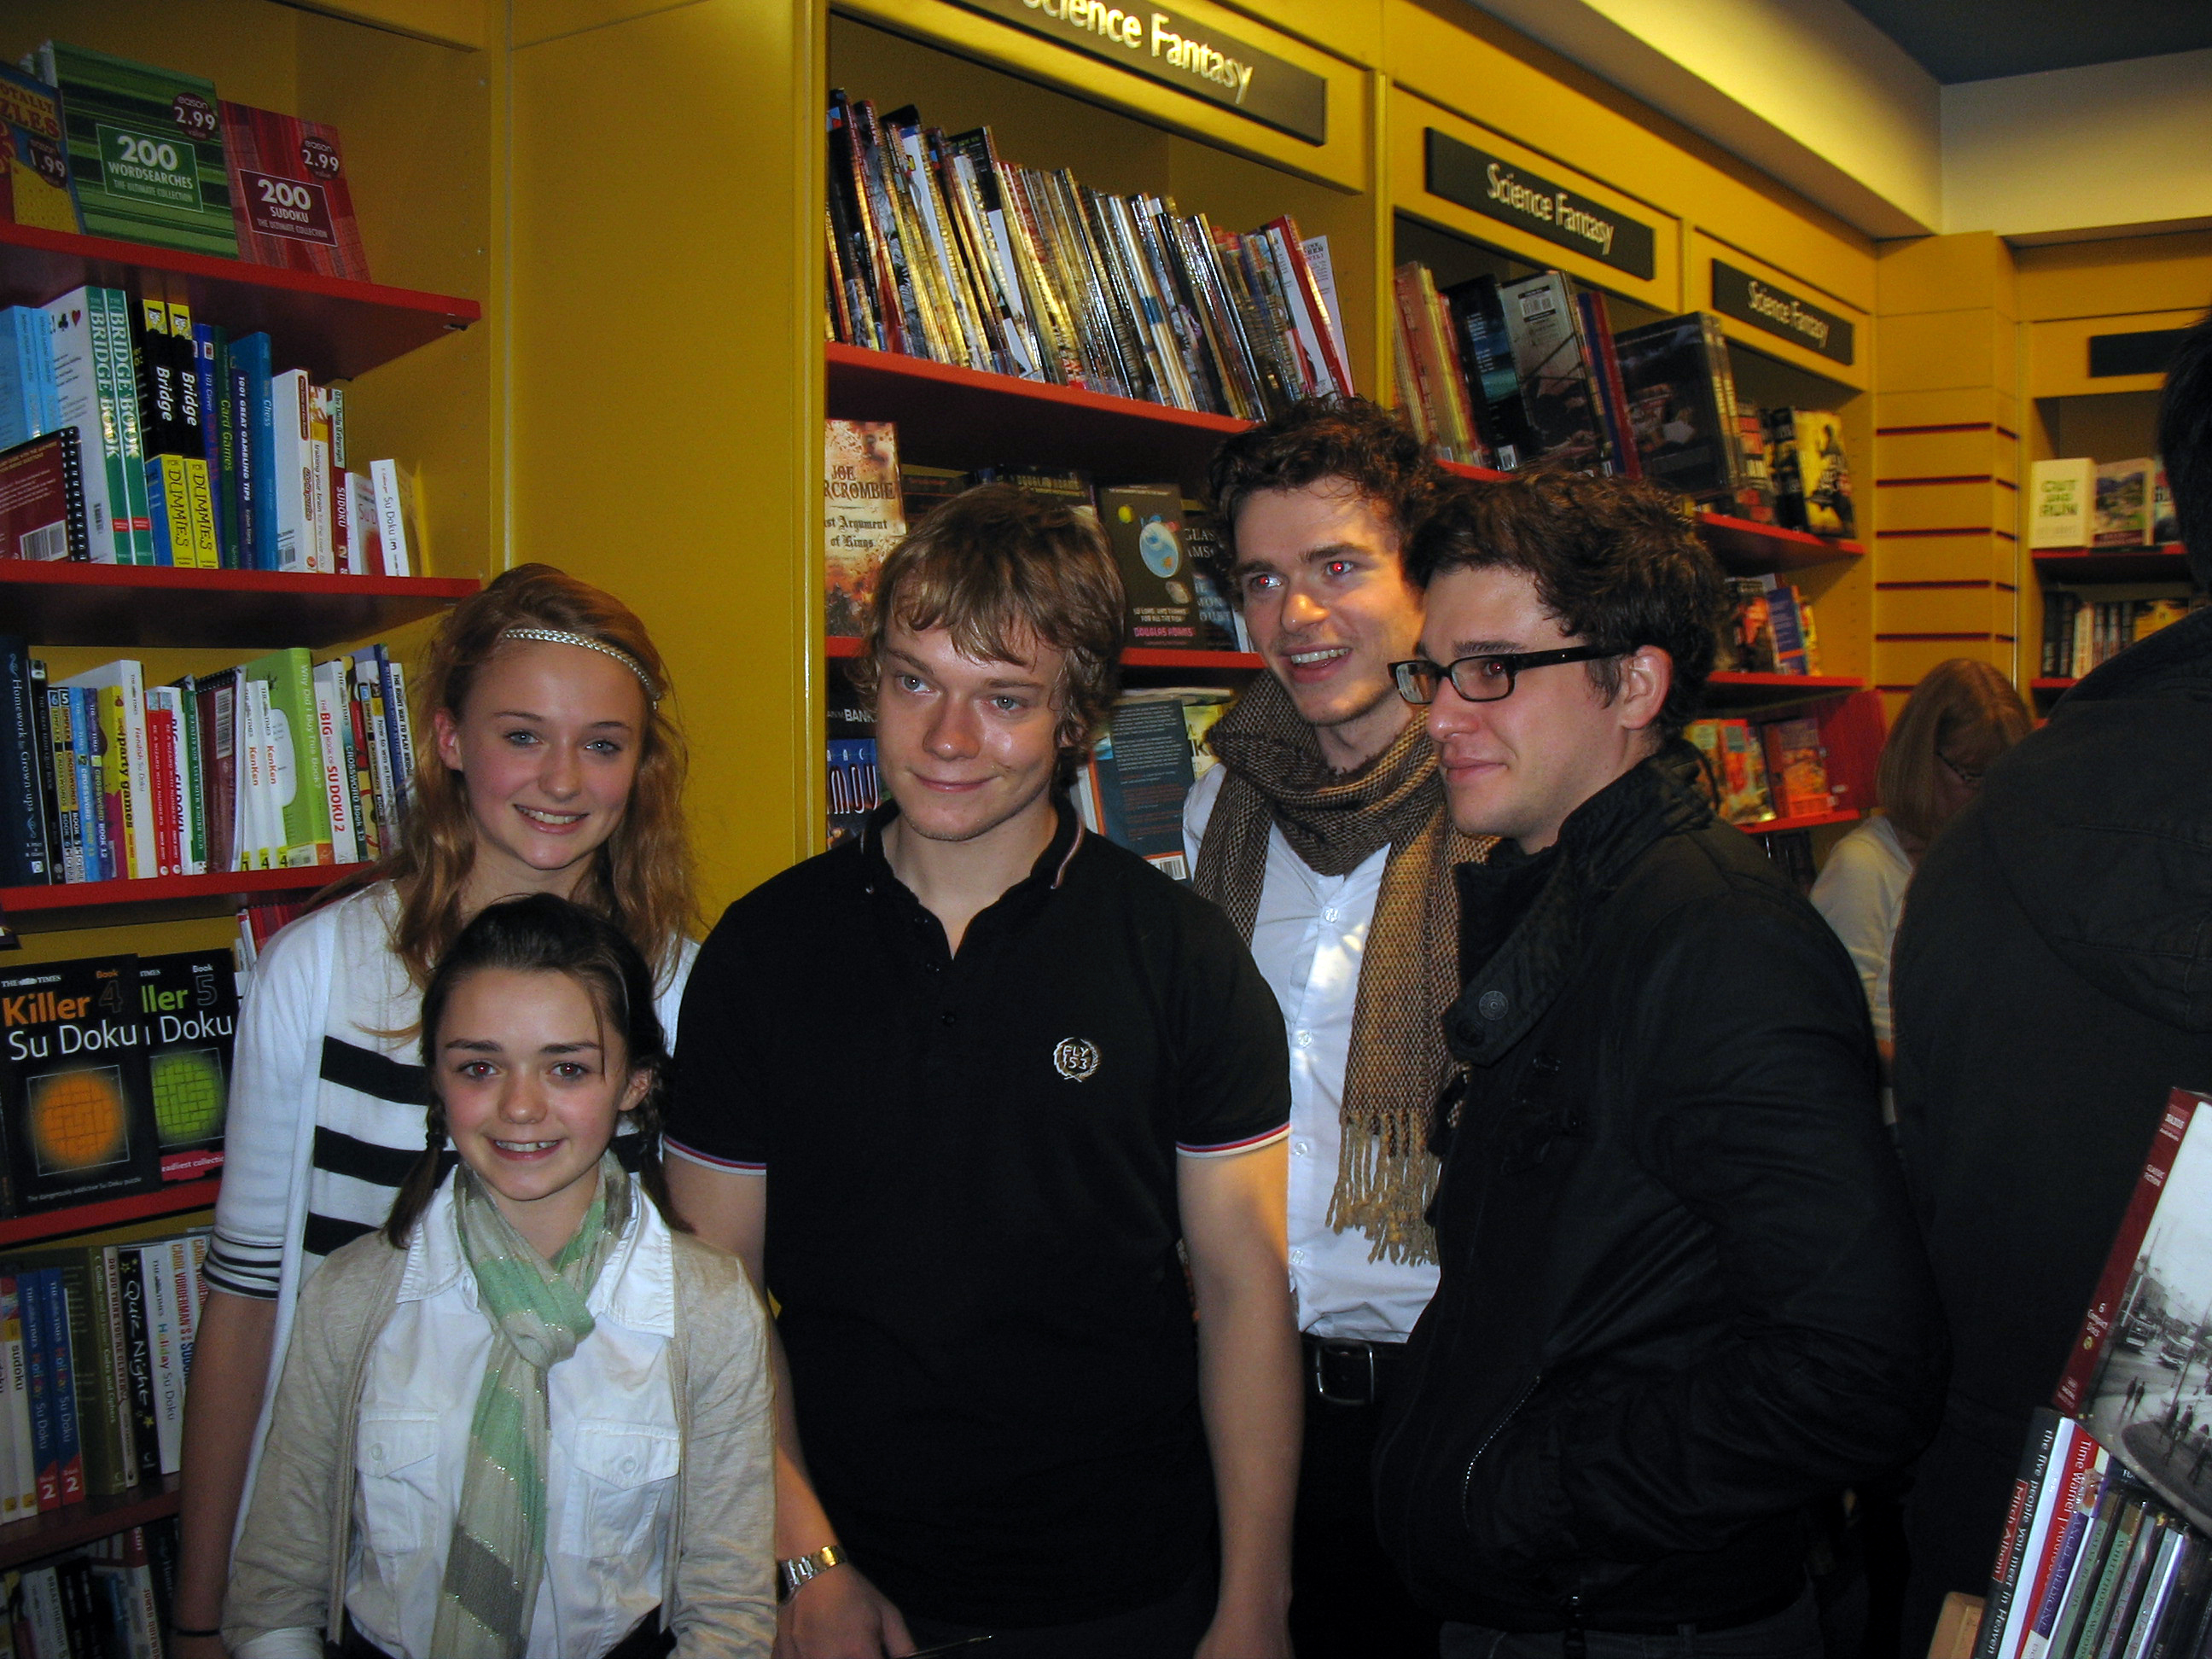 Richard Madden (Robb Stark) Maisie_Williams,_Sophie_Turner,_Alfie_Allen,_Richard_Madden_and_Kit_Harington